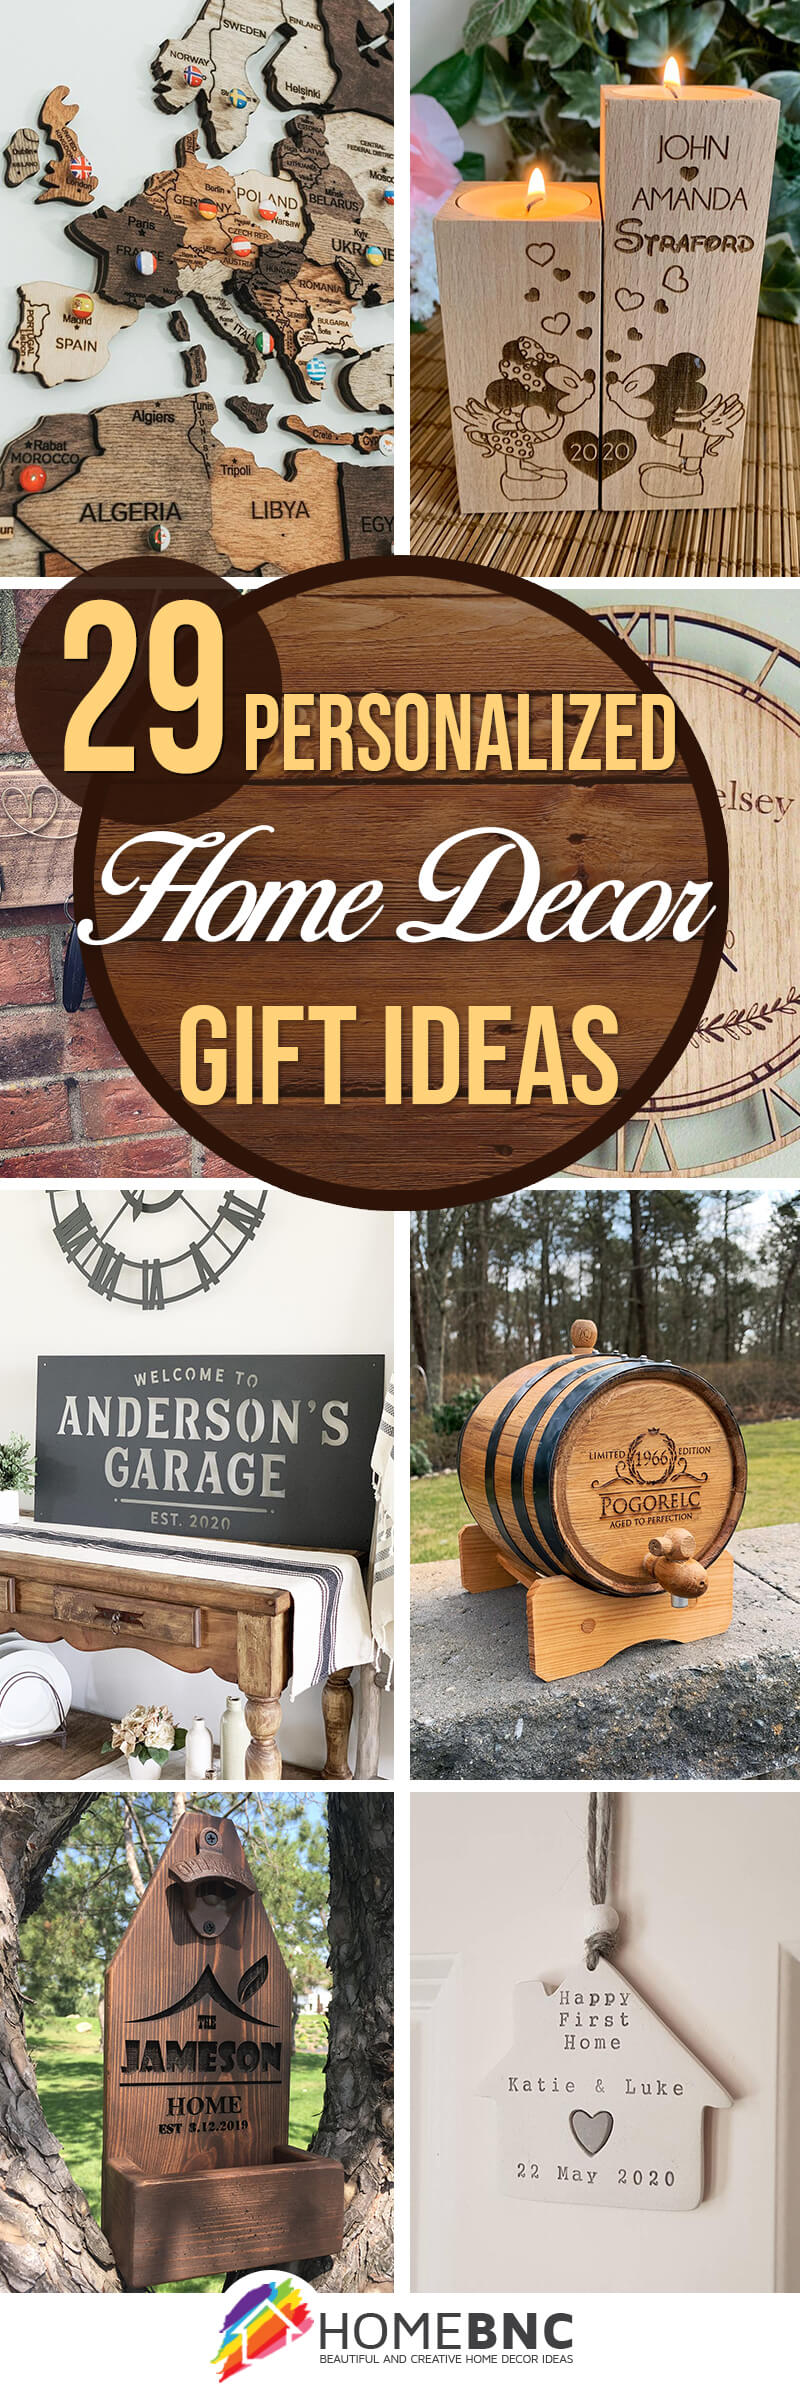 29 Best Personalized Home Decor Gift Ideas Your Family Will Love In 2021